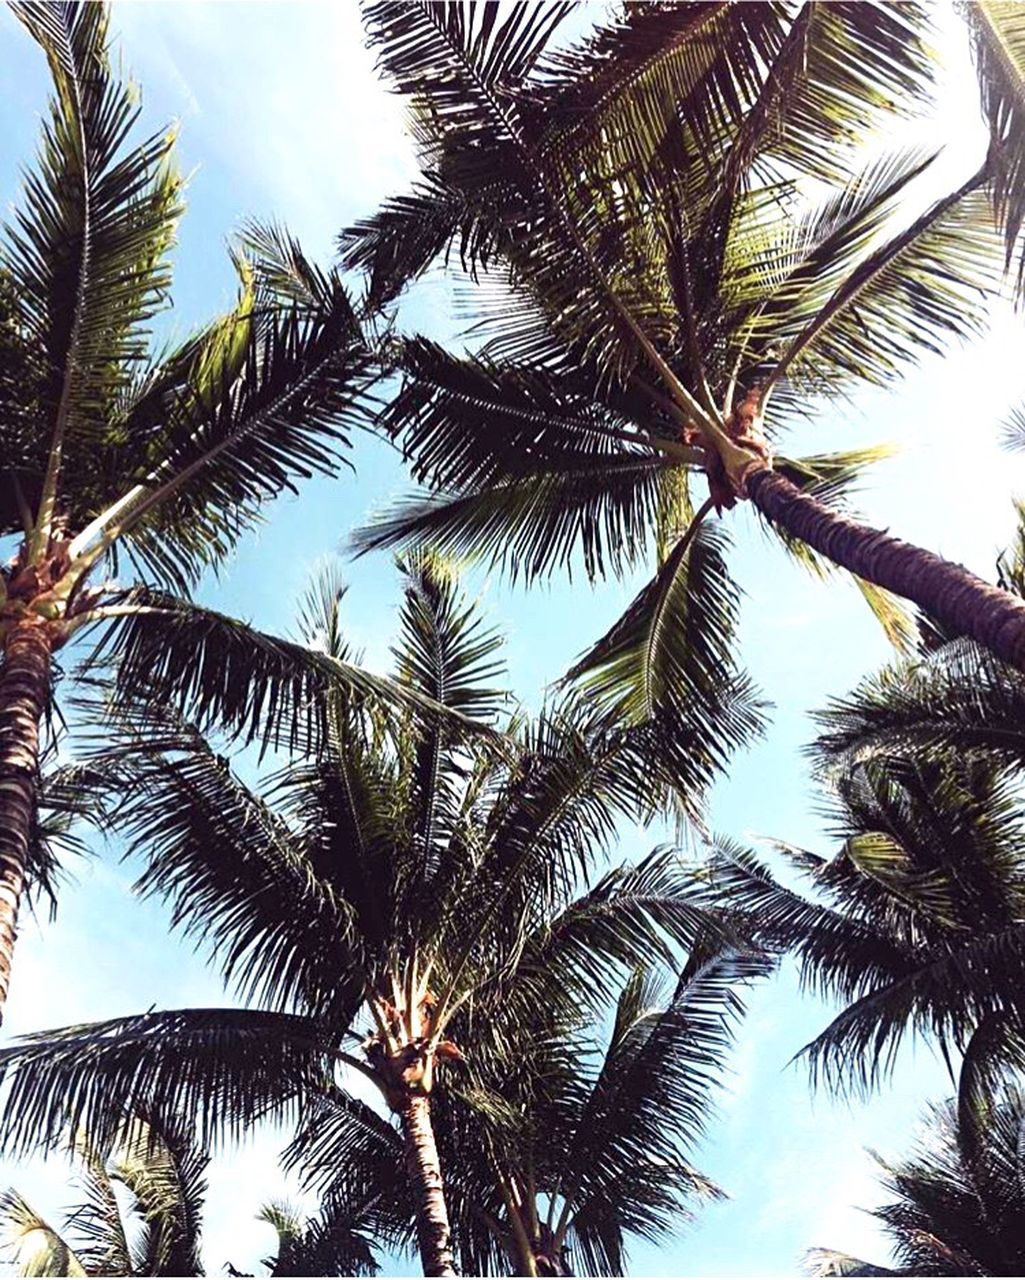 palm tree, tree, low angle view, nature, green, sky, tree trunk, adventure, beauty in nature, scenics, day, outdoors, growth, tranquility, no people, coconut